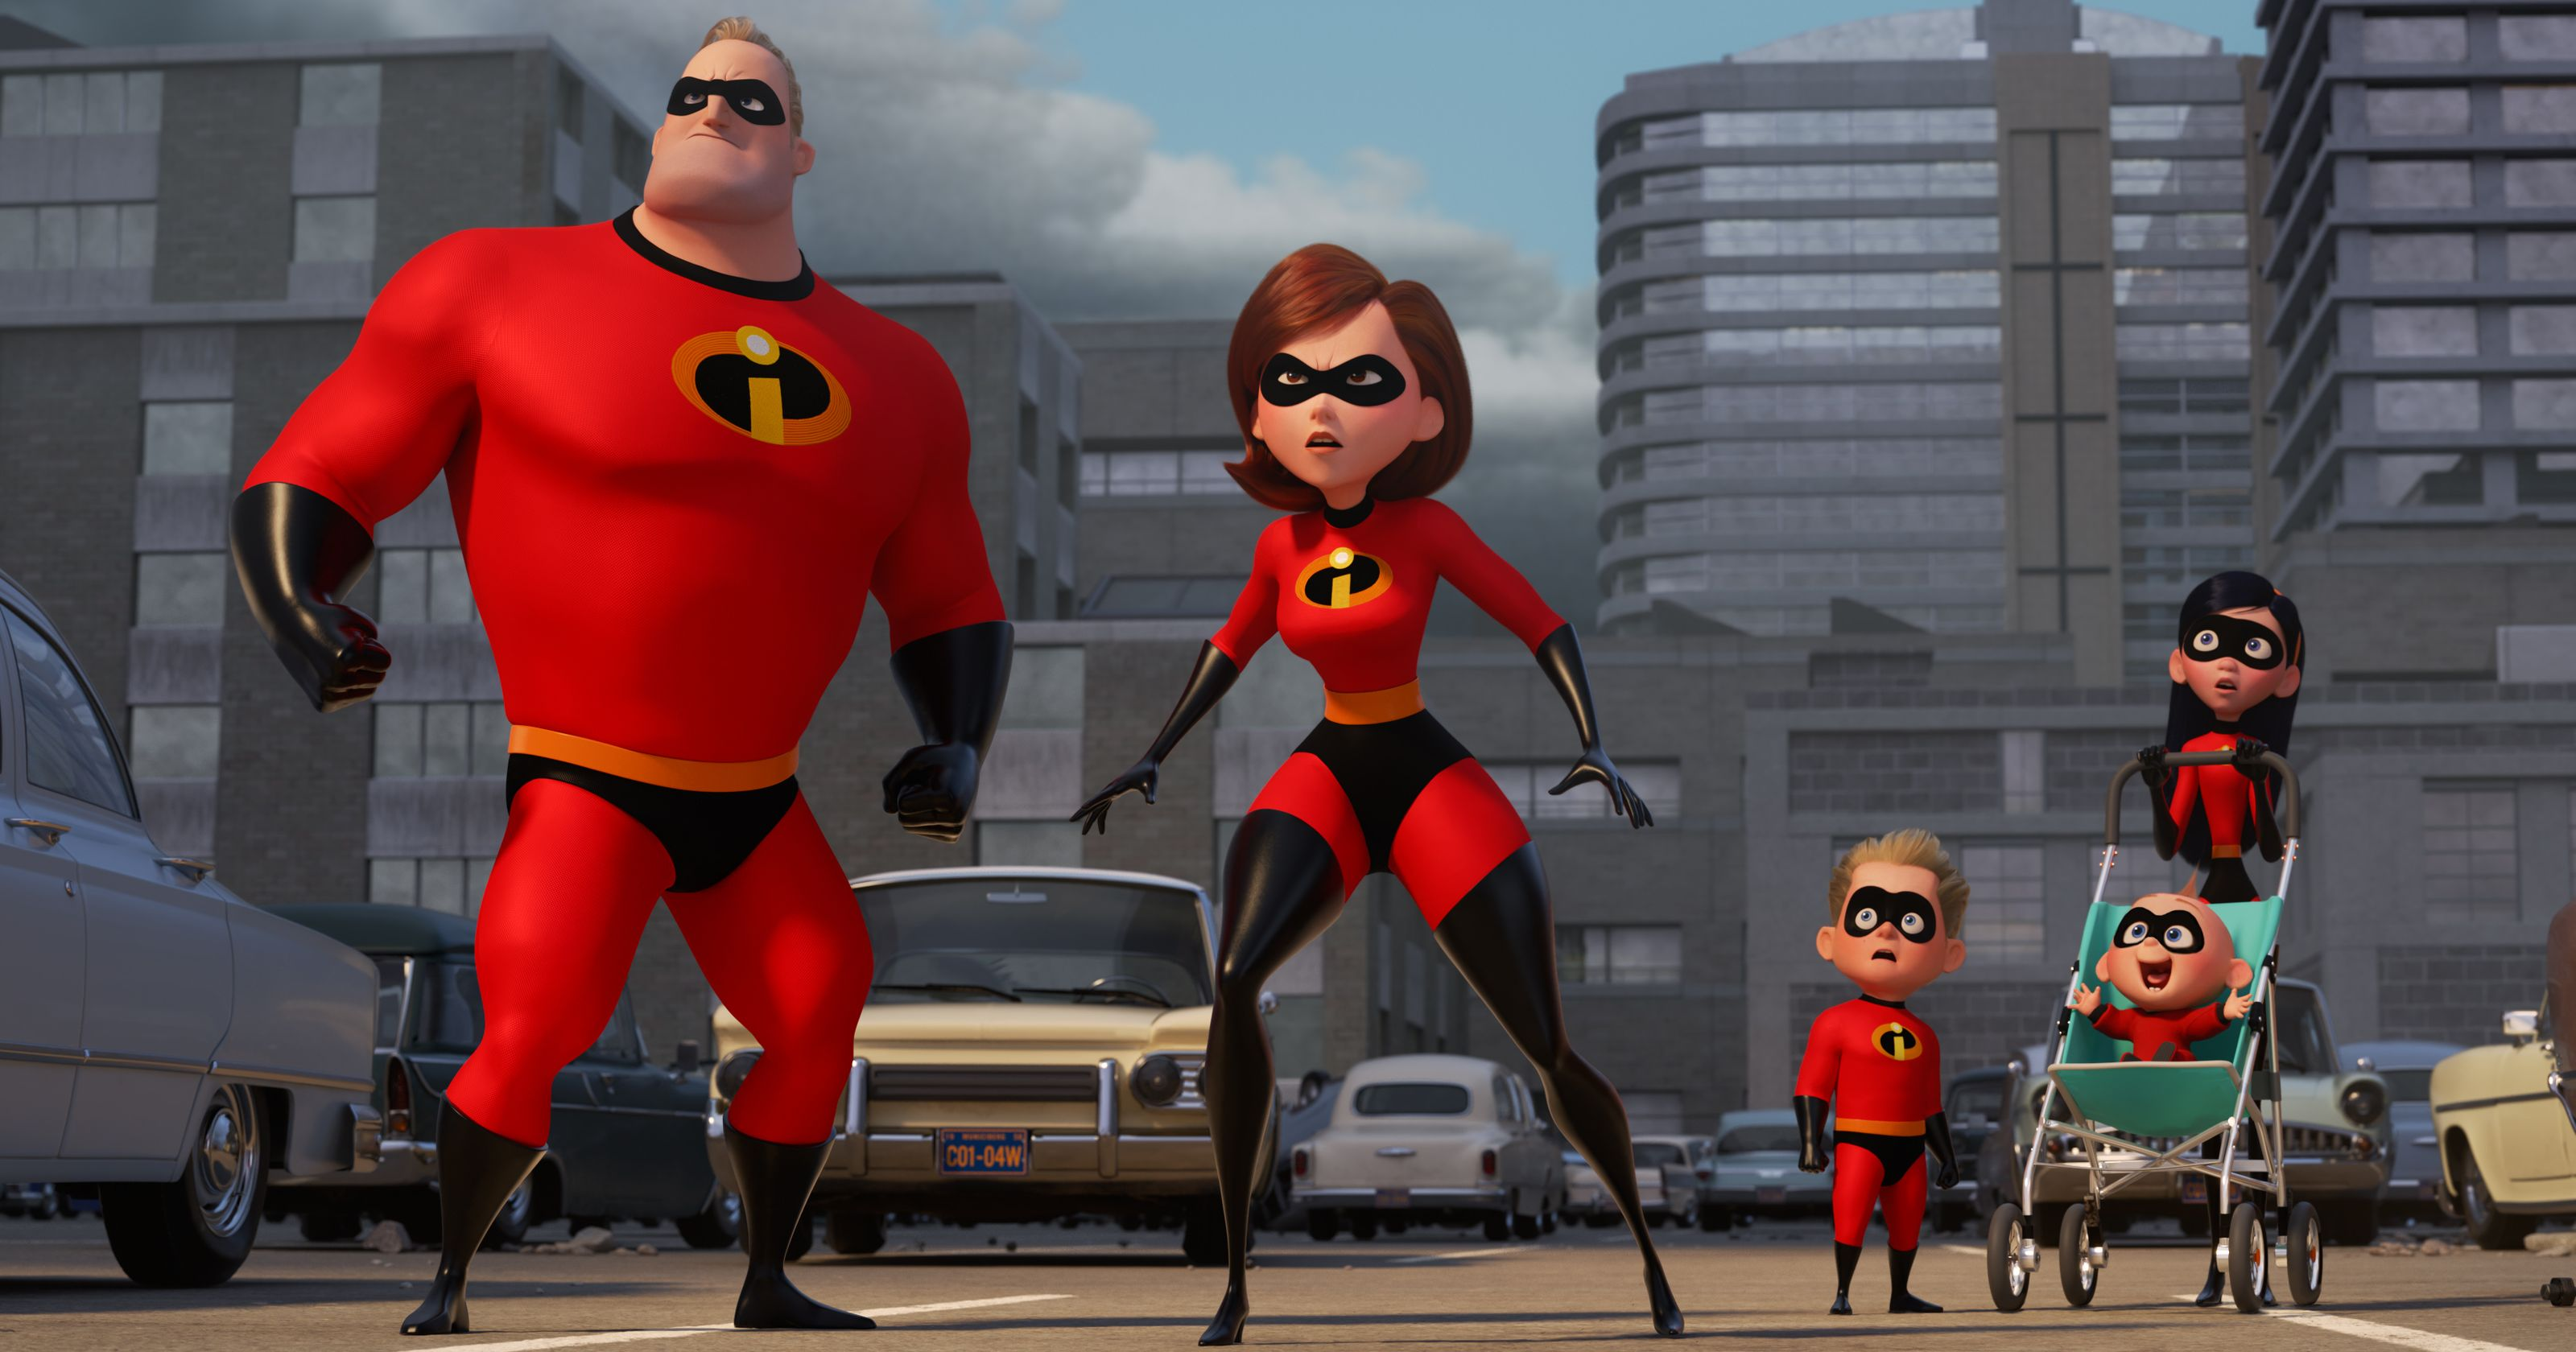 The Incredibles back in action - Bob/Mr Incredible, Helen/Elastigirl, Dash, Jack-Jack and Violet in Incredibles 2 (2018)